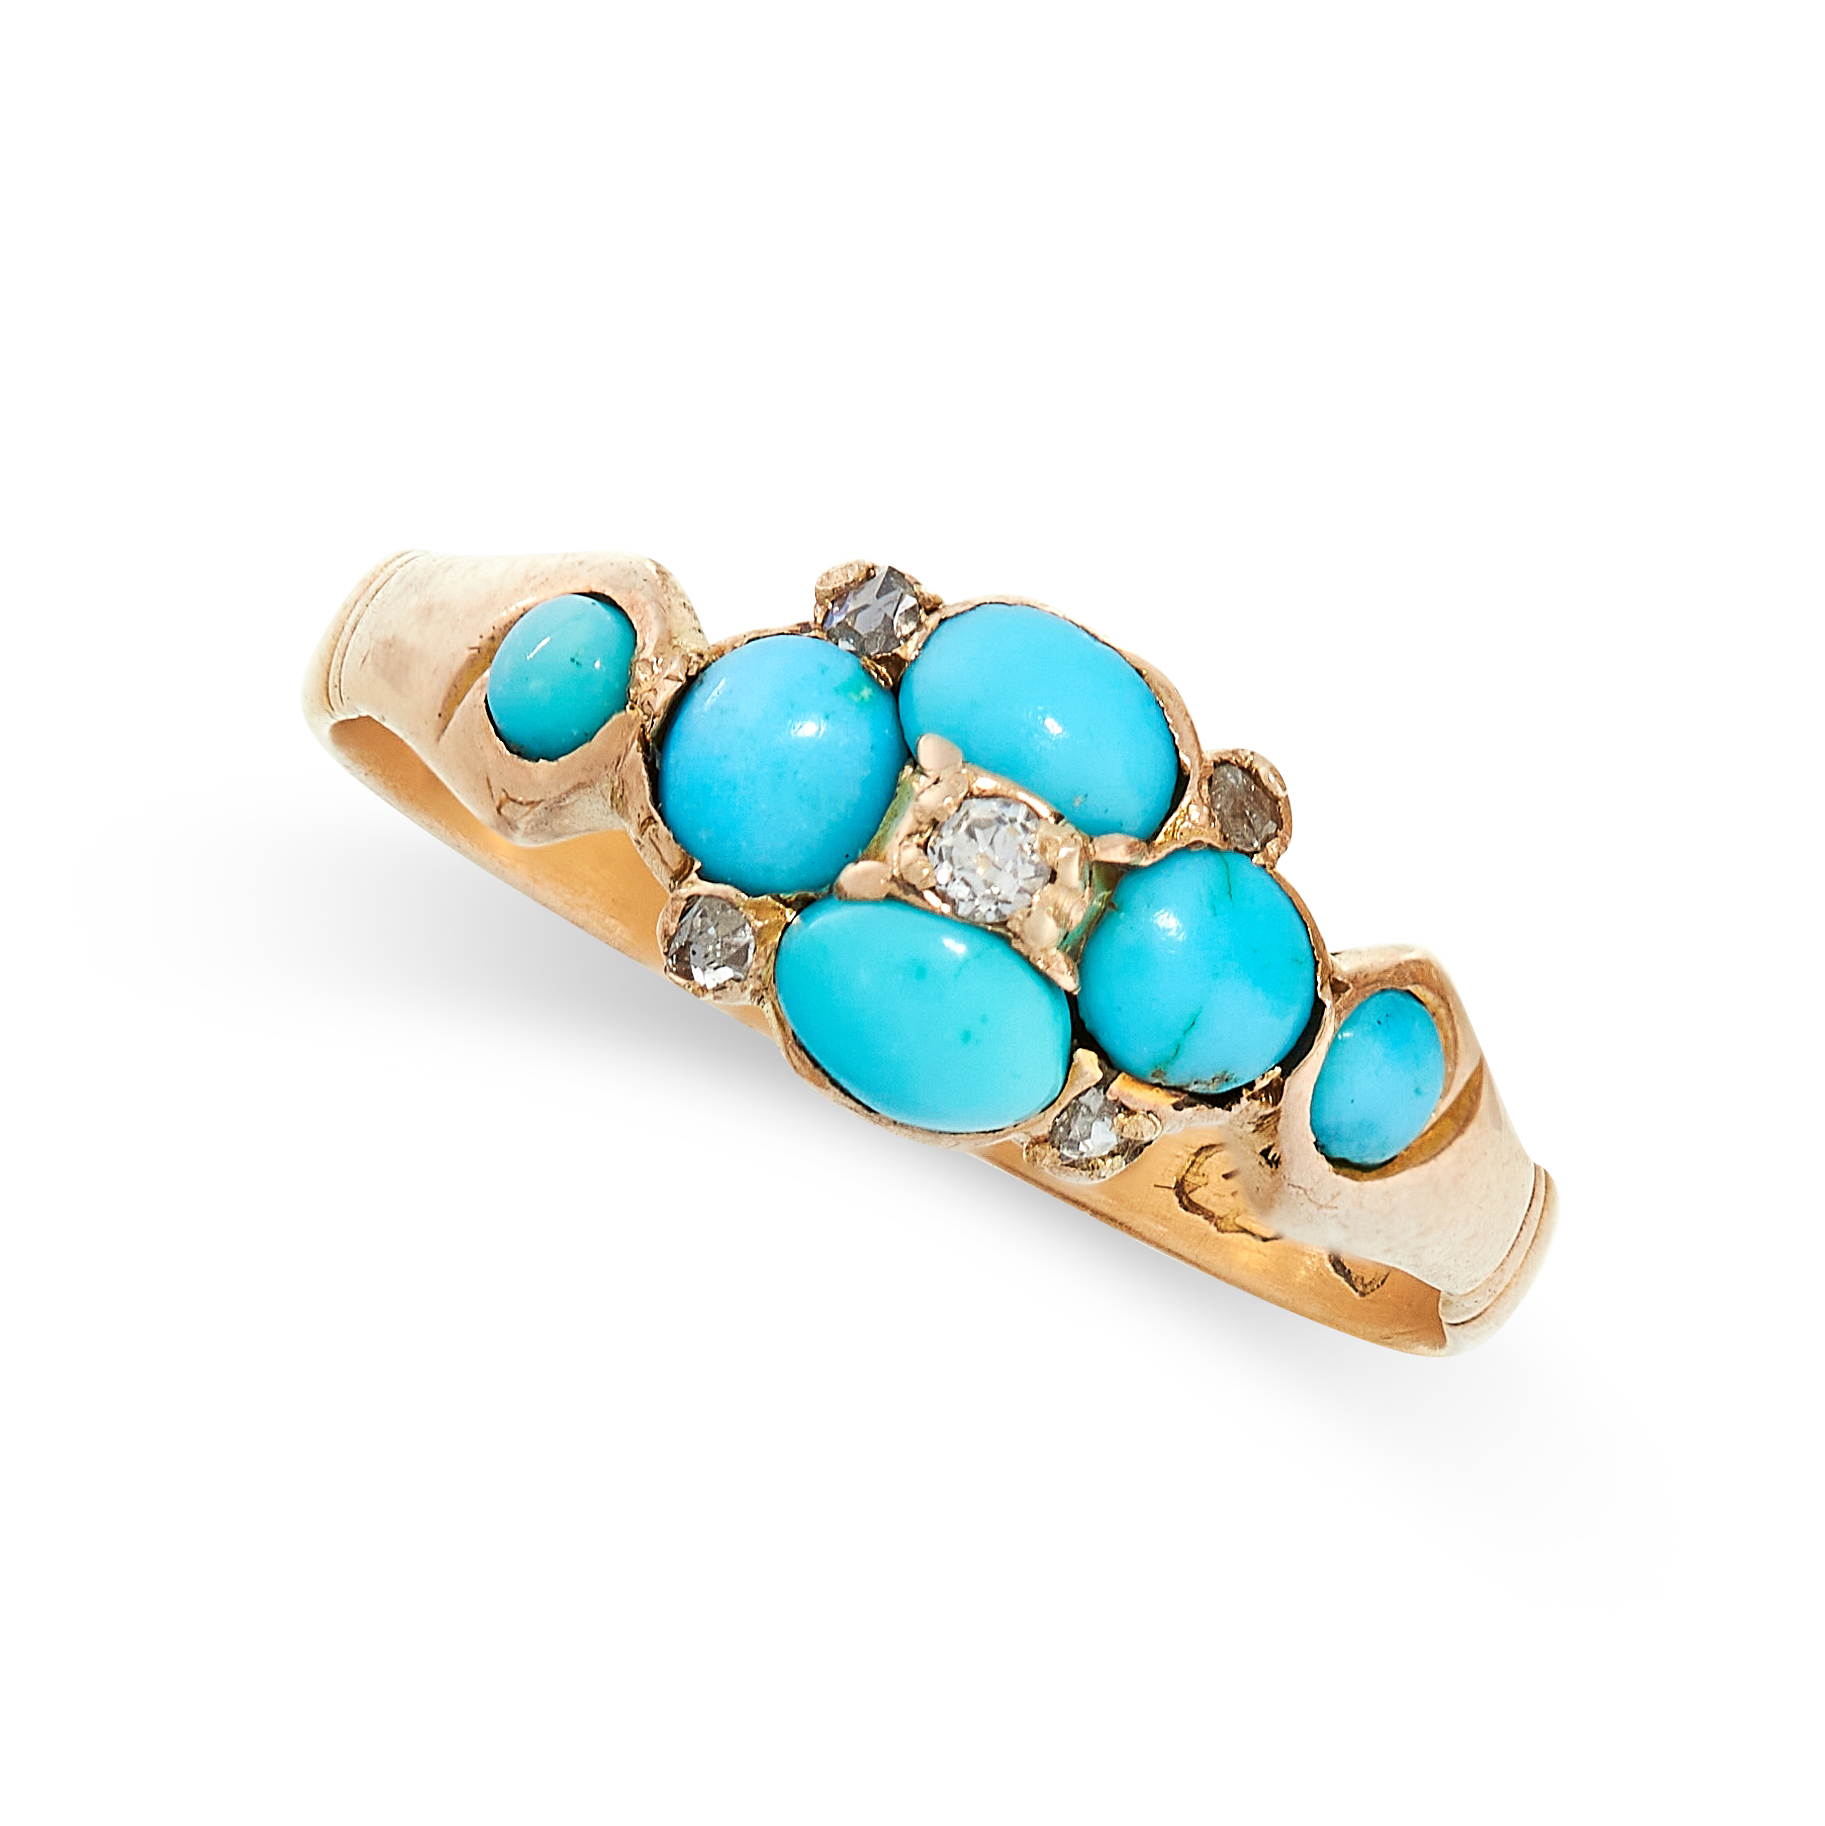 ANTIQUE TURQUOISE AND DIAMOND RING in 22ct yellow gold, in the form of a flower set with cabochon